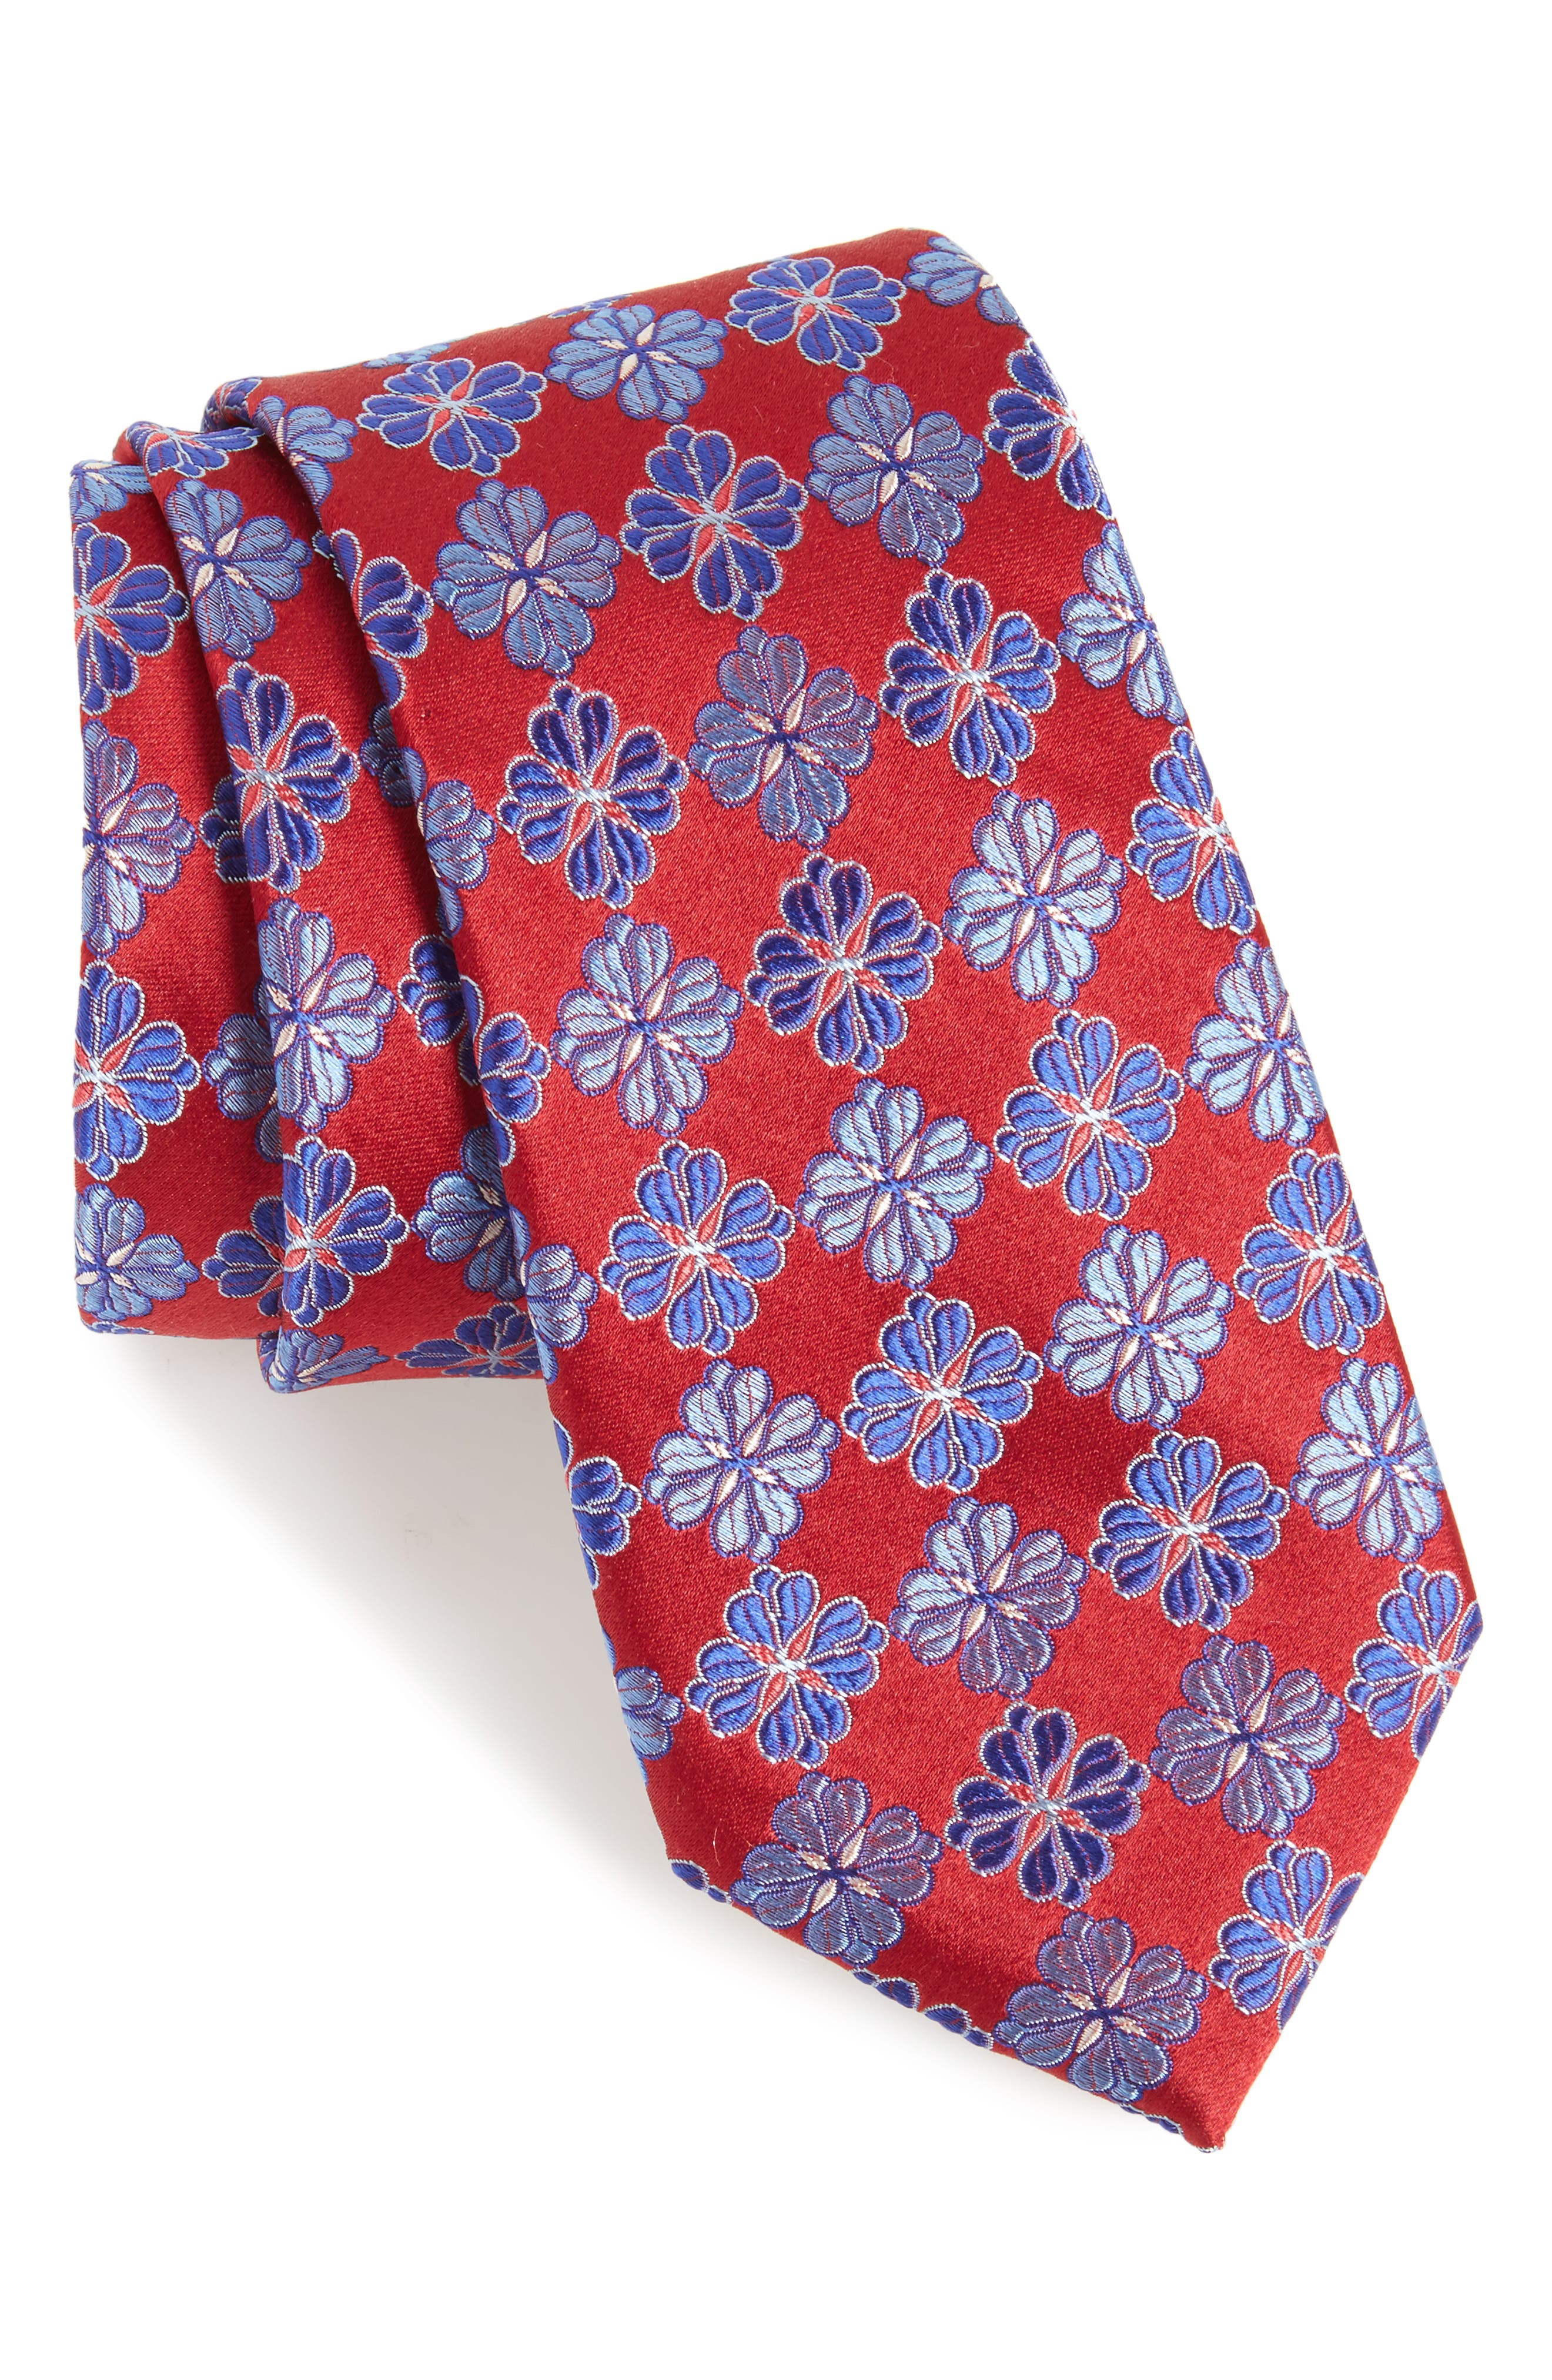 Cole Floral Silk Tie,                             Main thumbnail 1, color,                             Baked Fashion Red